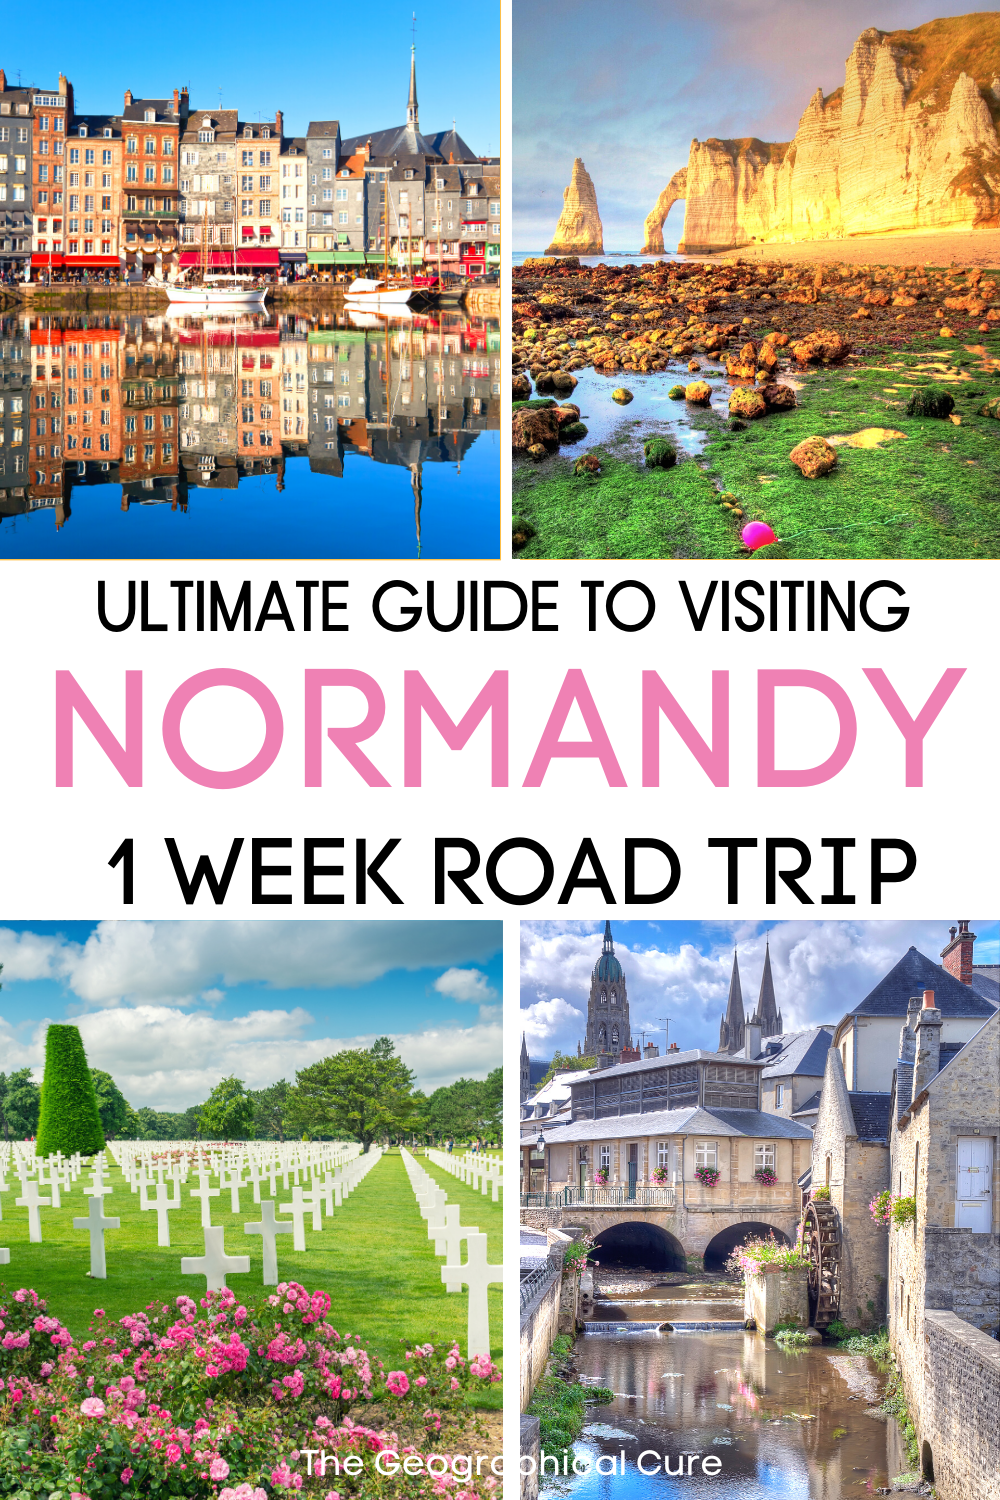 1 week road trip itinerary for Normandy France